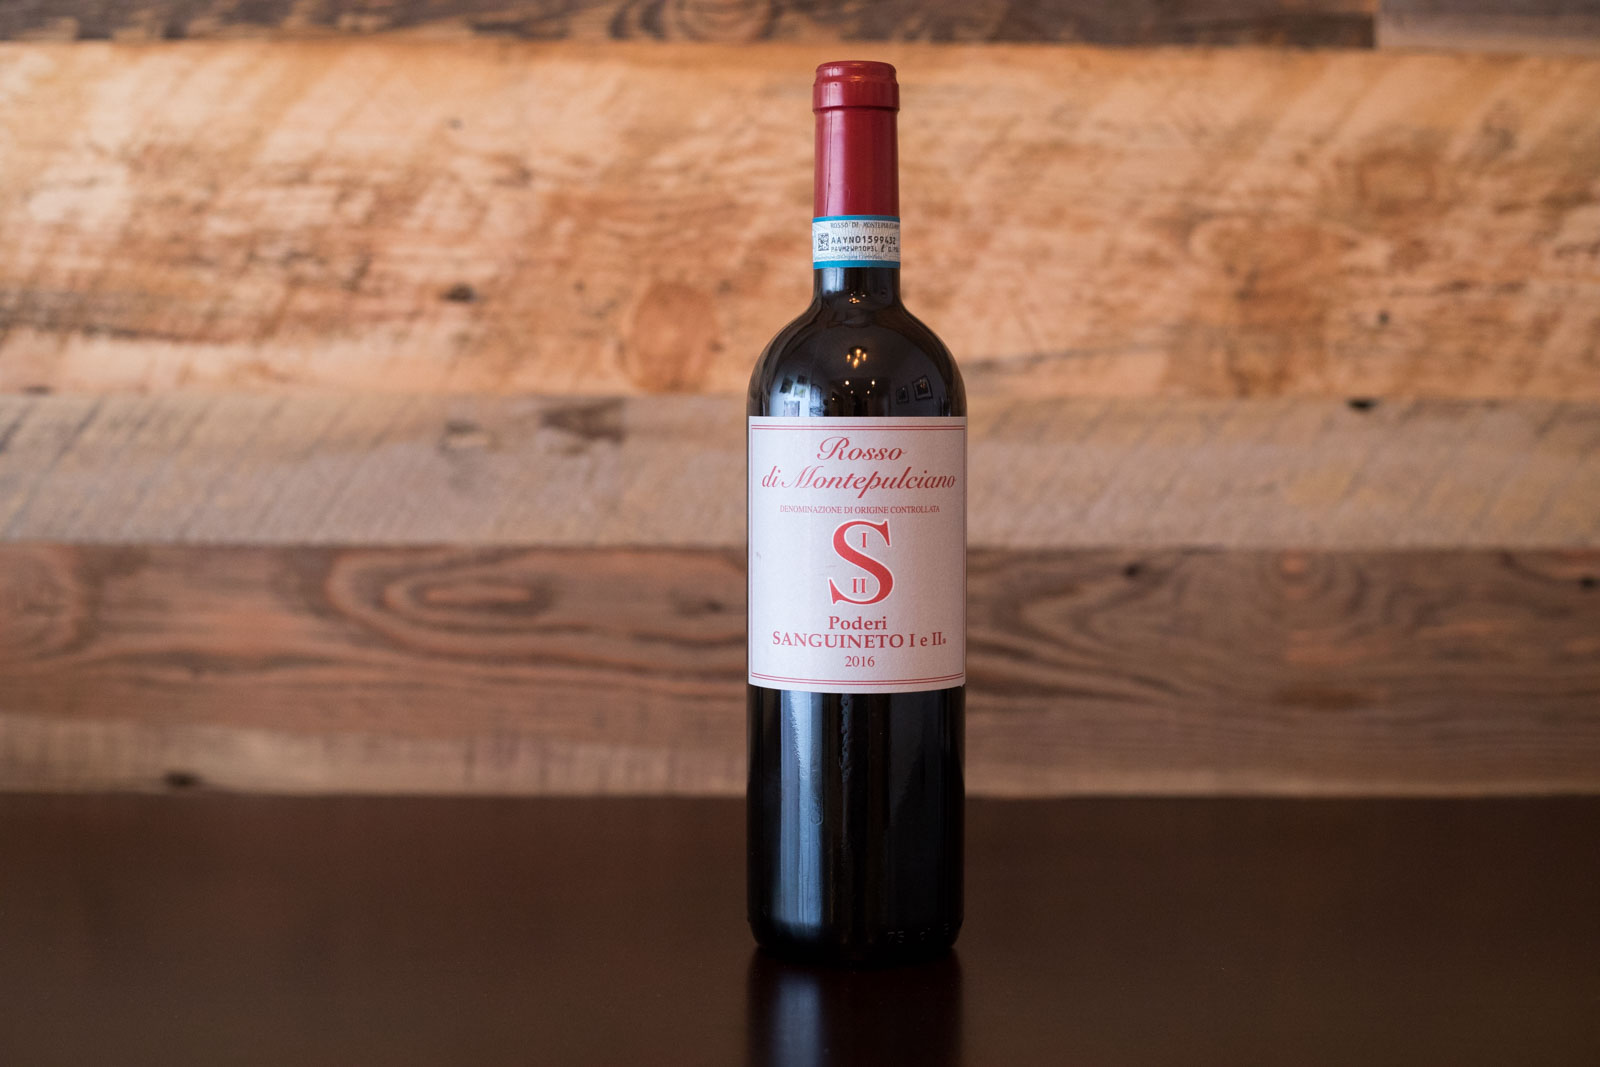 2016 Poderi Sanguineto I & II Rosso di Montepulciano ©Kevin Day/Opening a Bottle